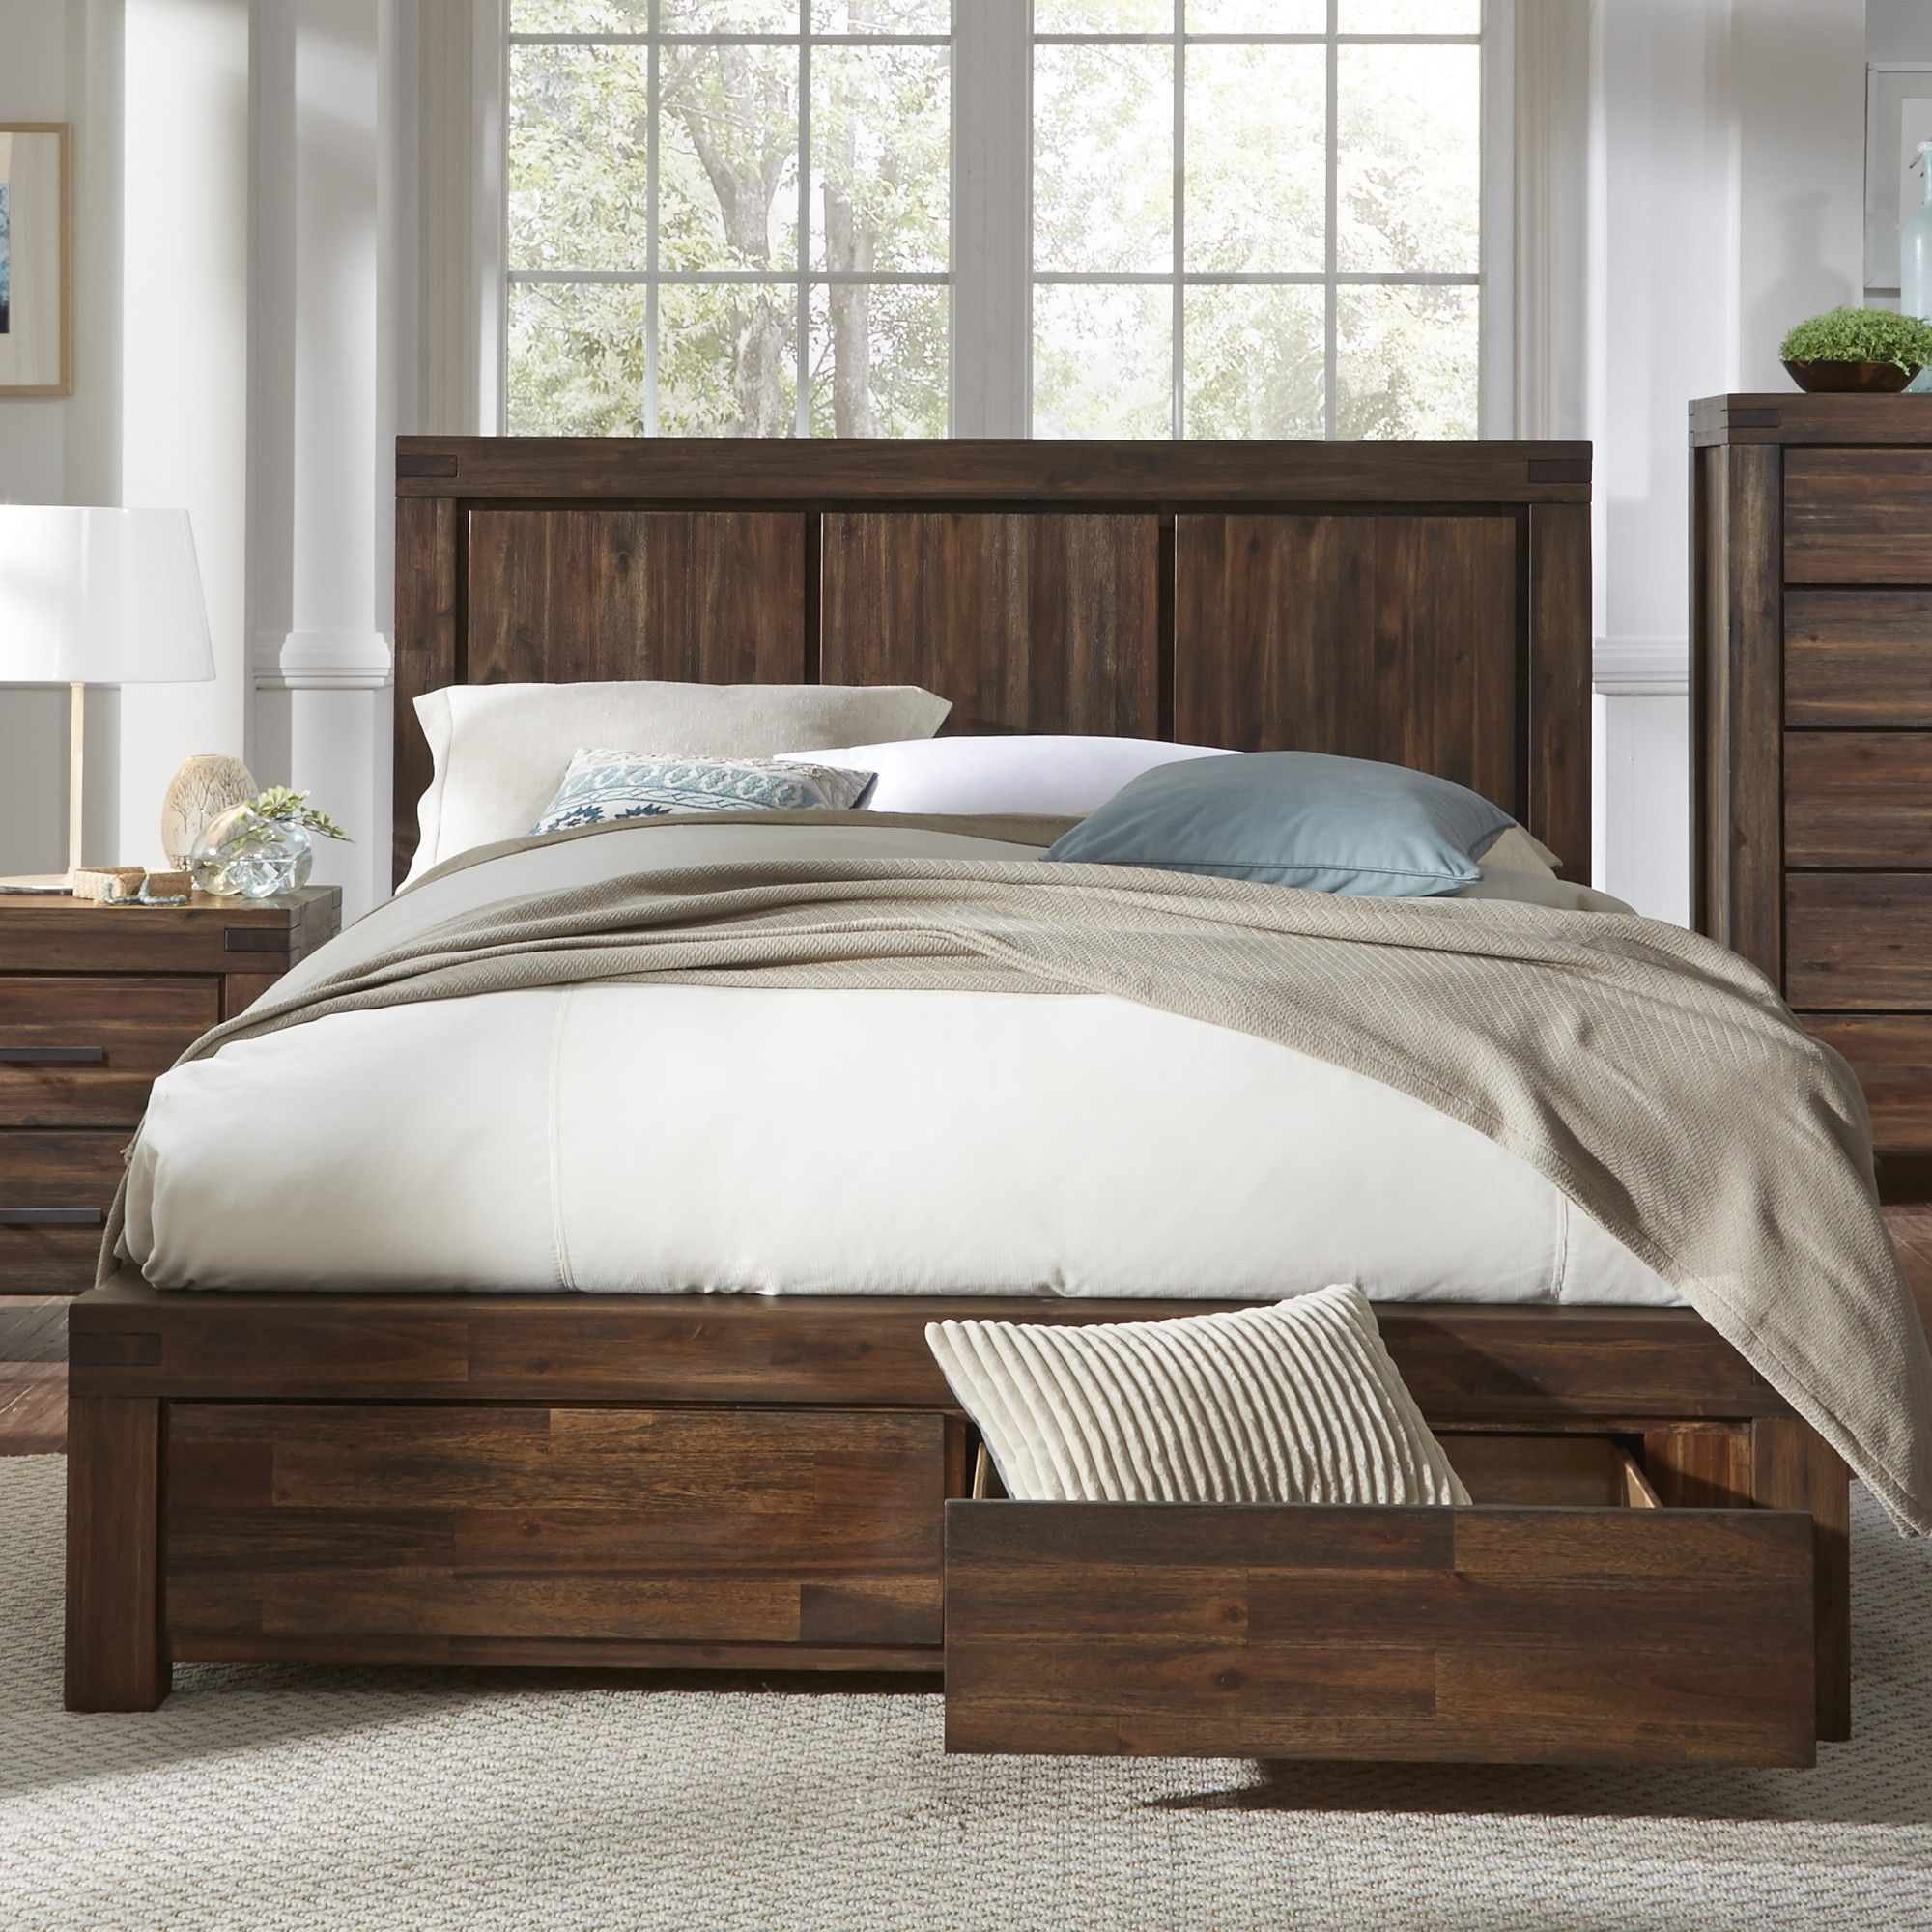 Palo Alto Storage Panel Bed Products Pinterest Bed Bed